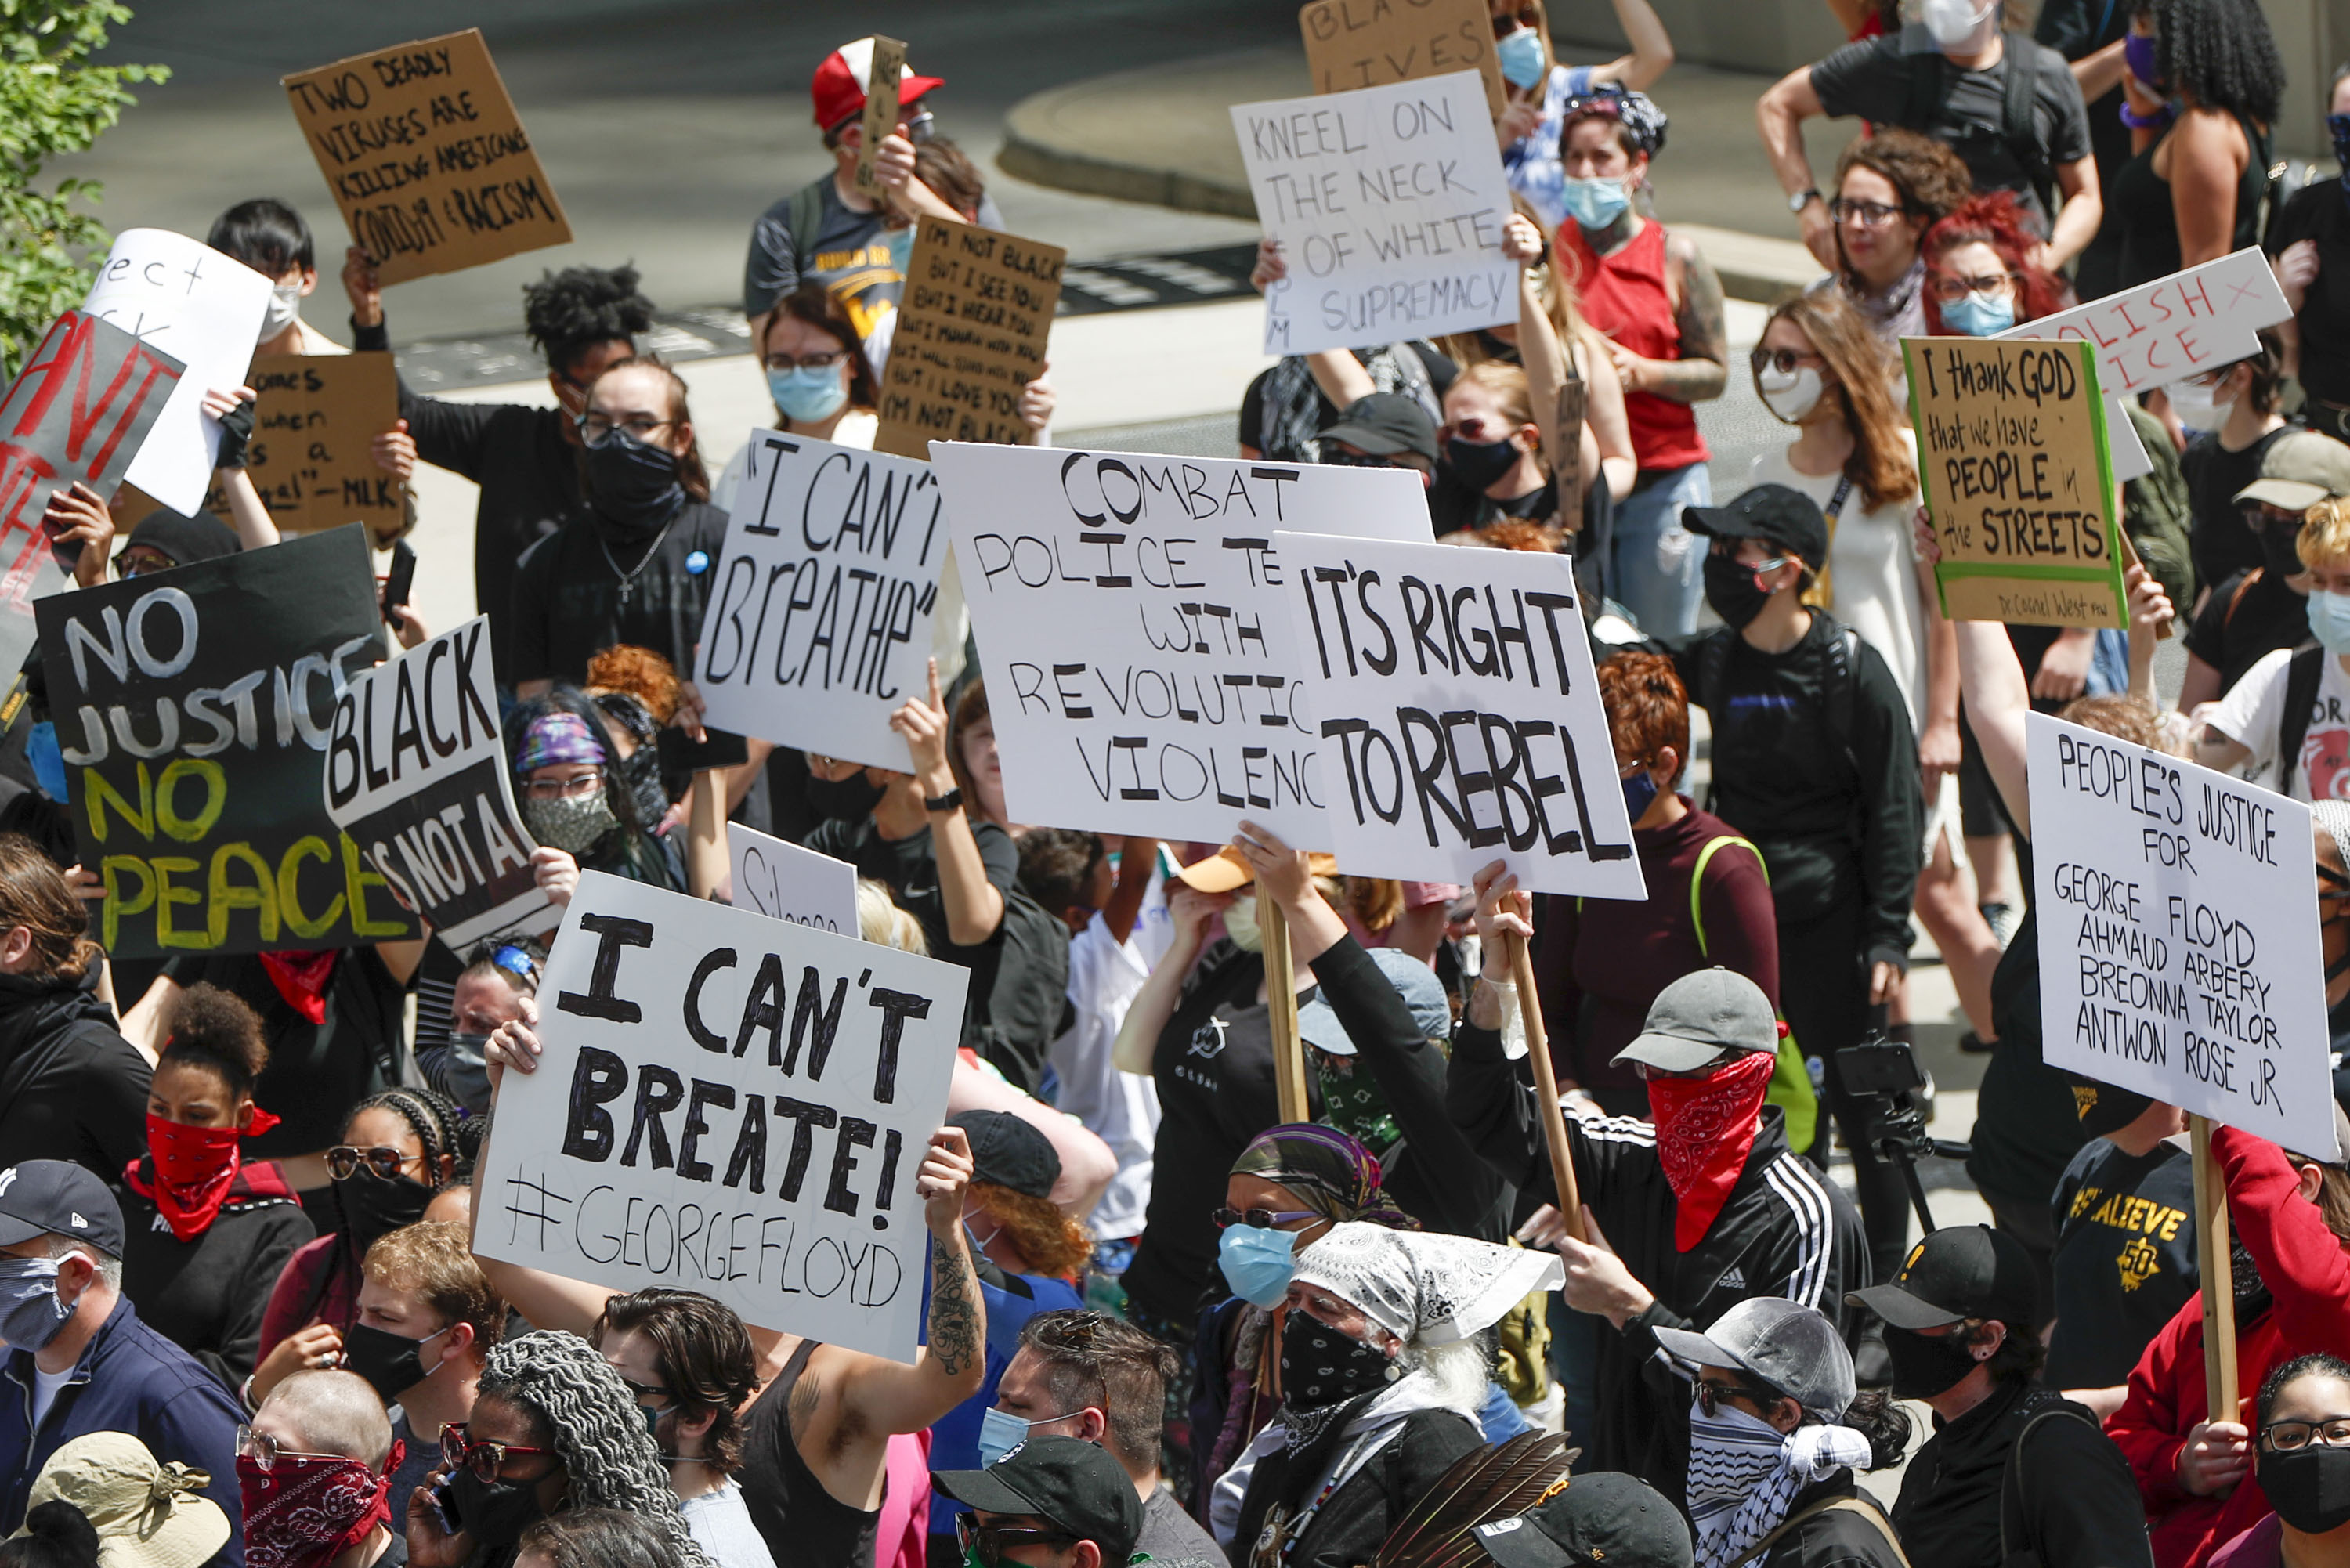 Demonstrators gather in a street during a march in Pittsburgh on May 30.